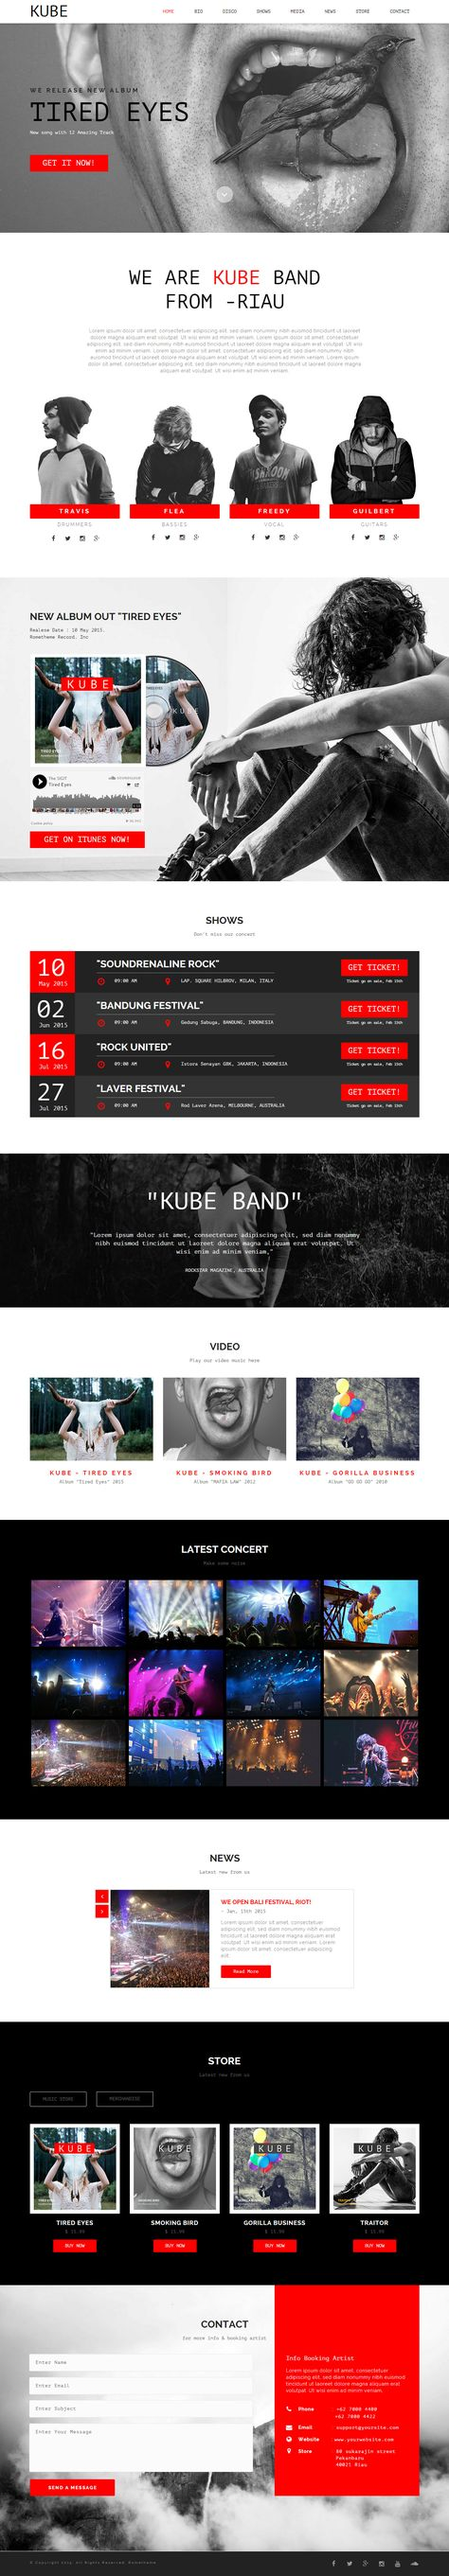 Kube - Musician, DJ, Band, Music #AdobeMuse #Template. Available on #Themeforest #EnvatoMarket by rometheme.net